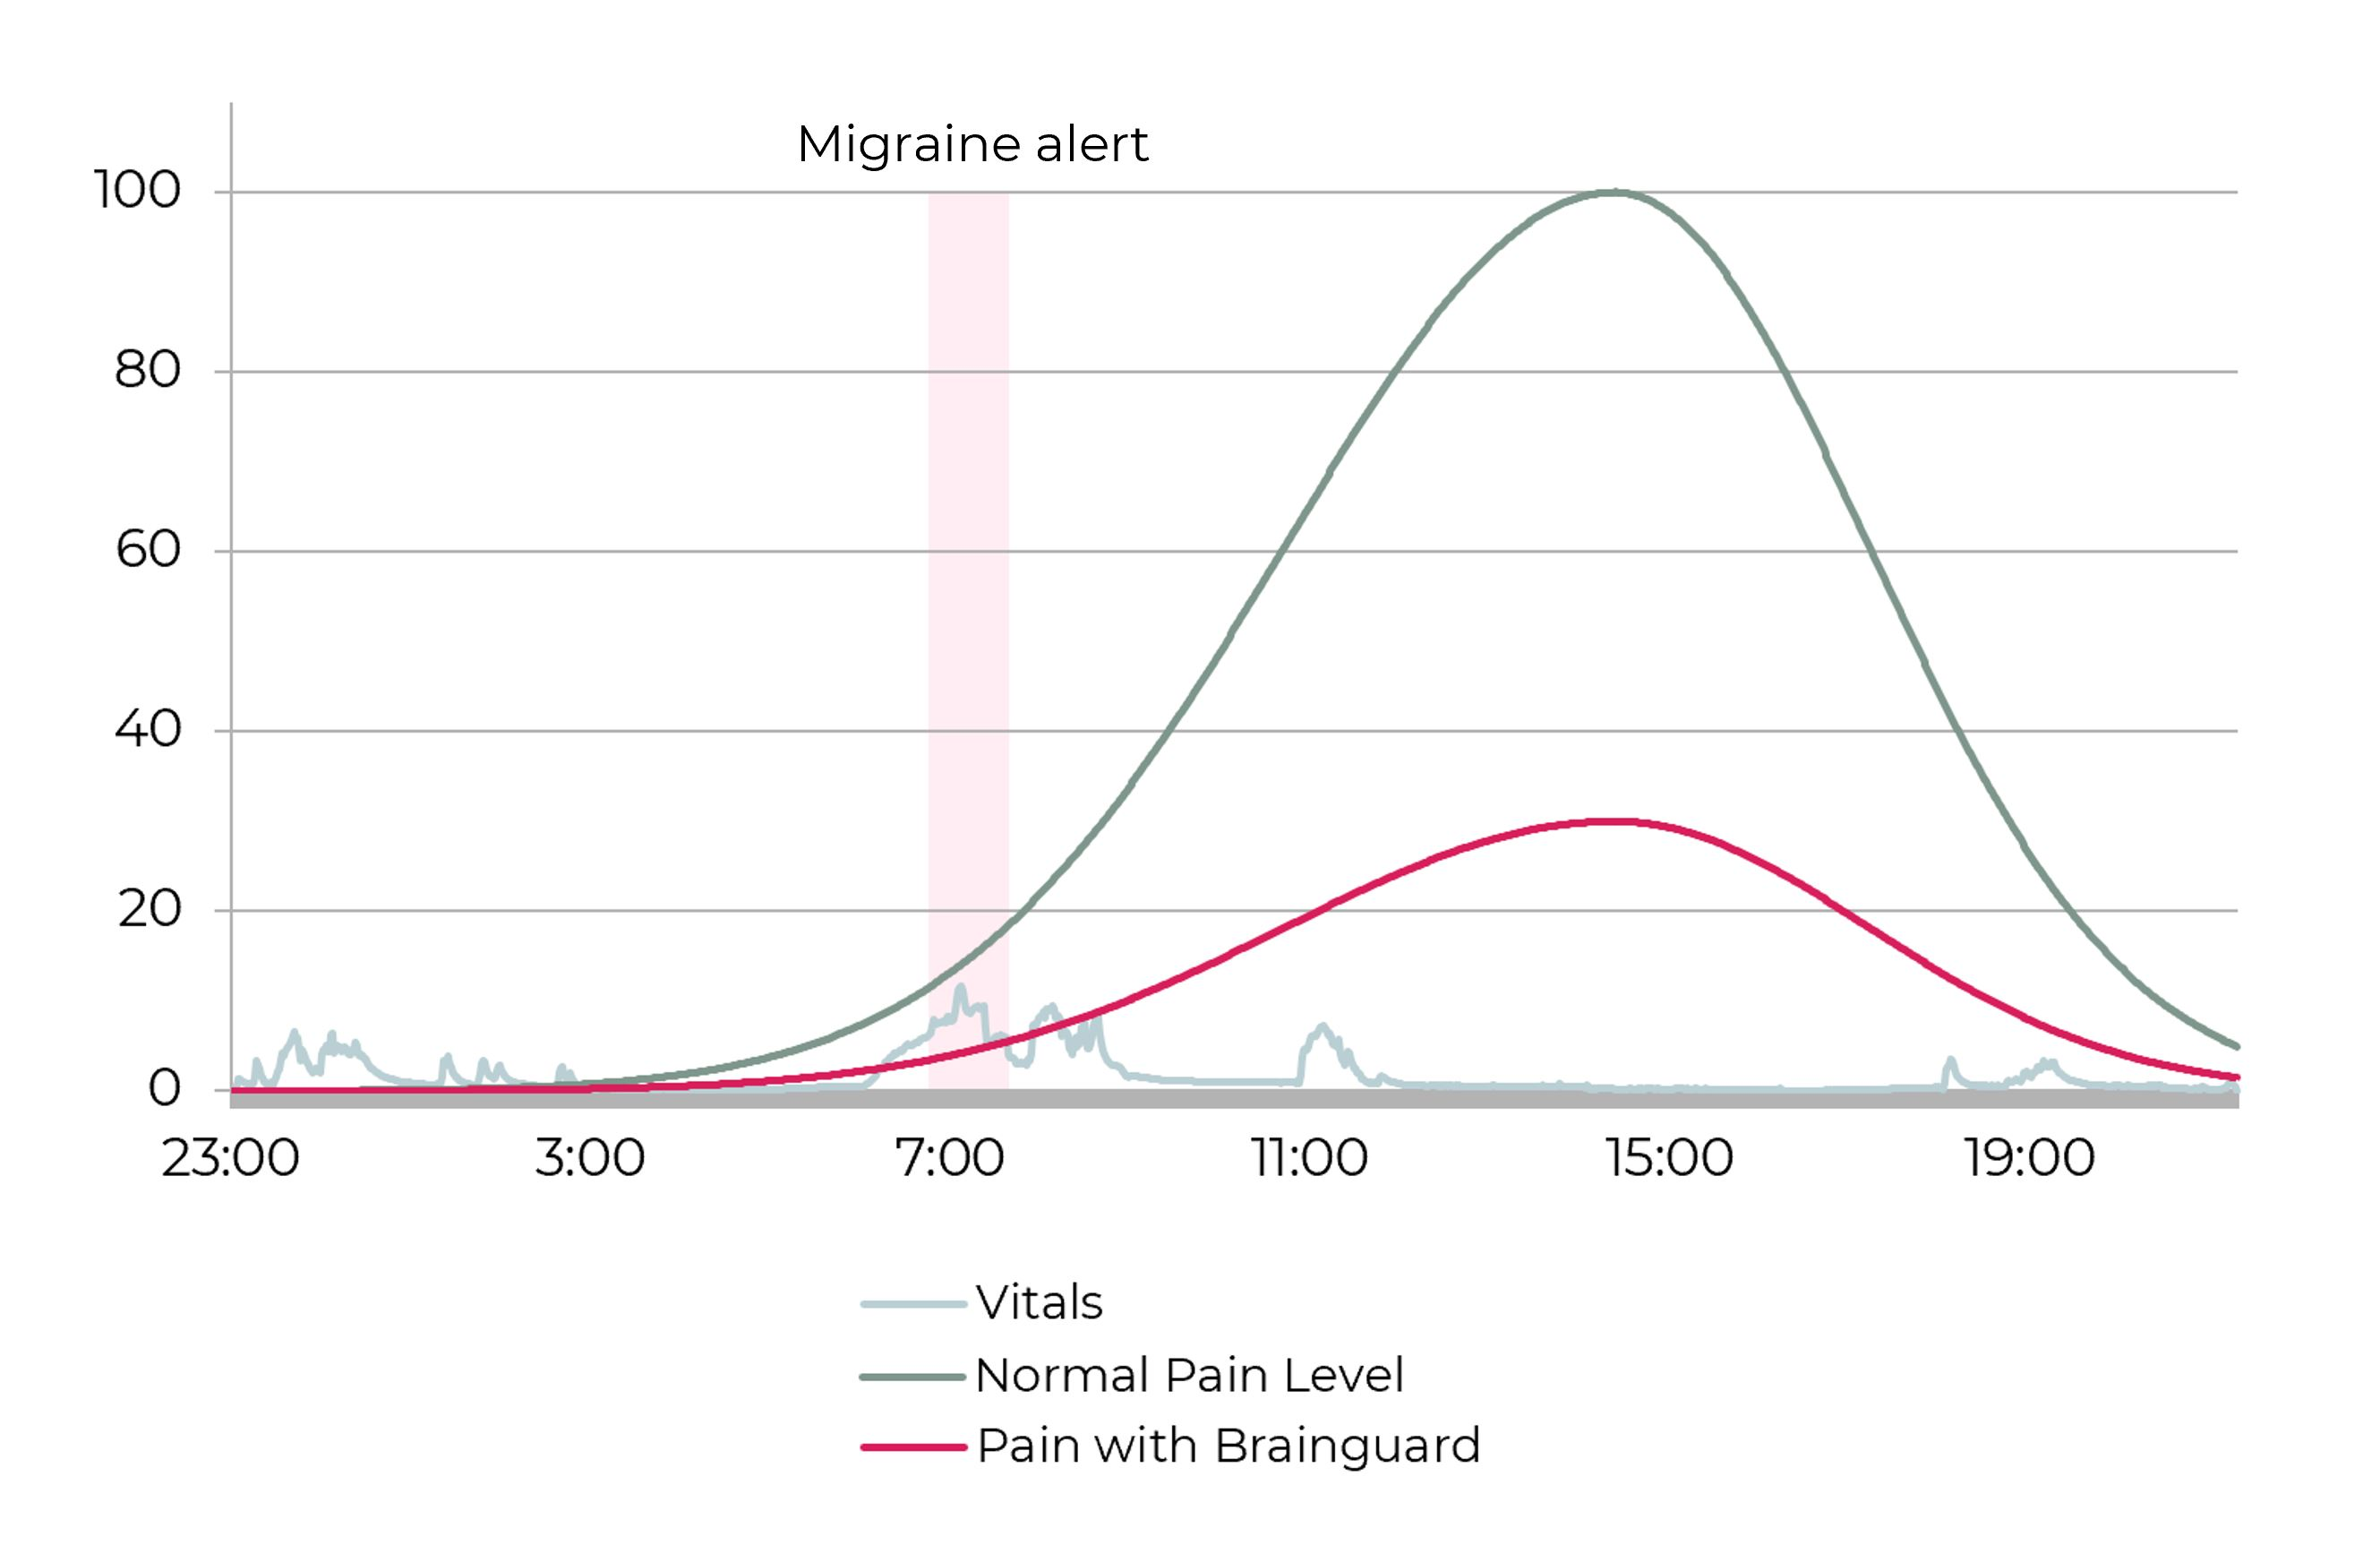 Graphic comparing the pain level with and without Brainguard.